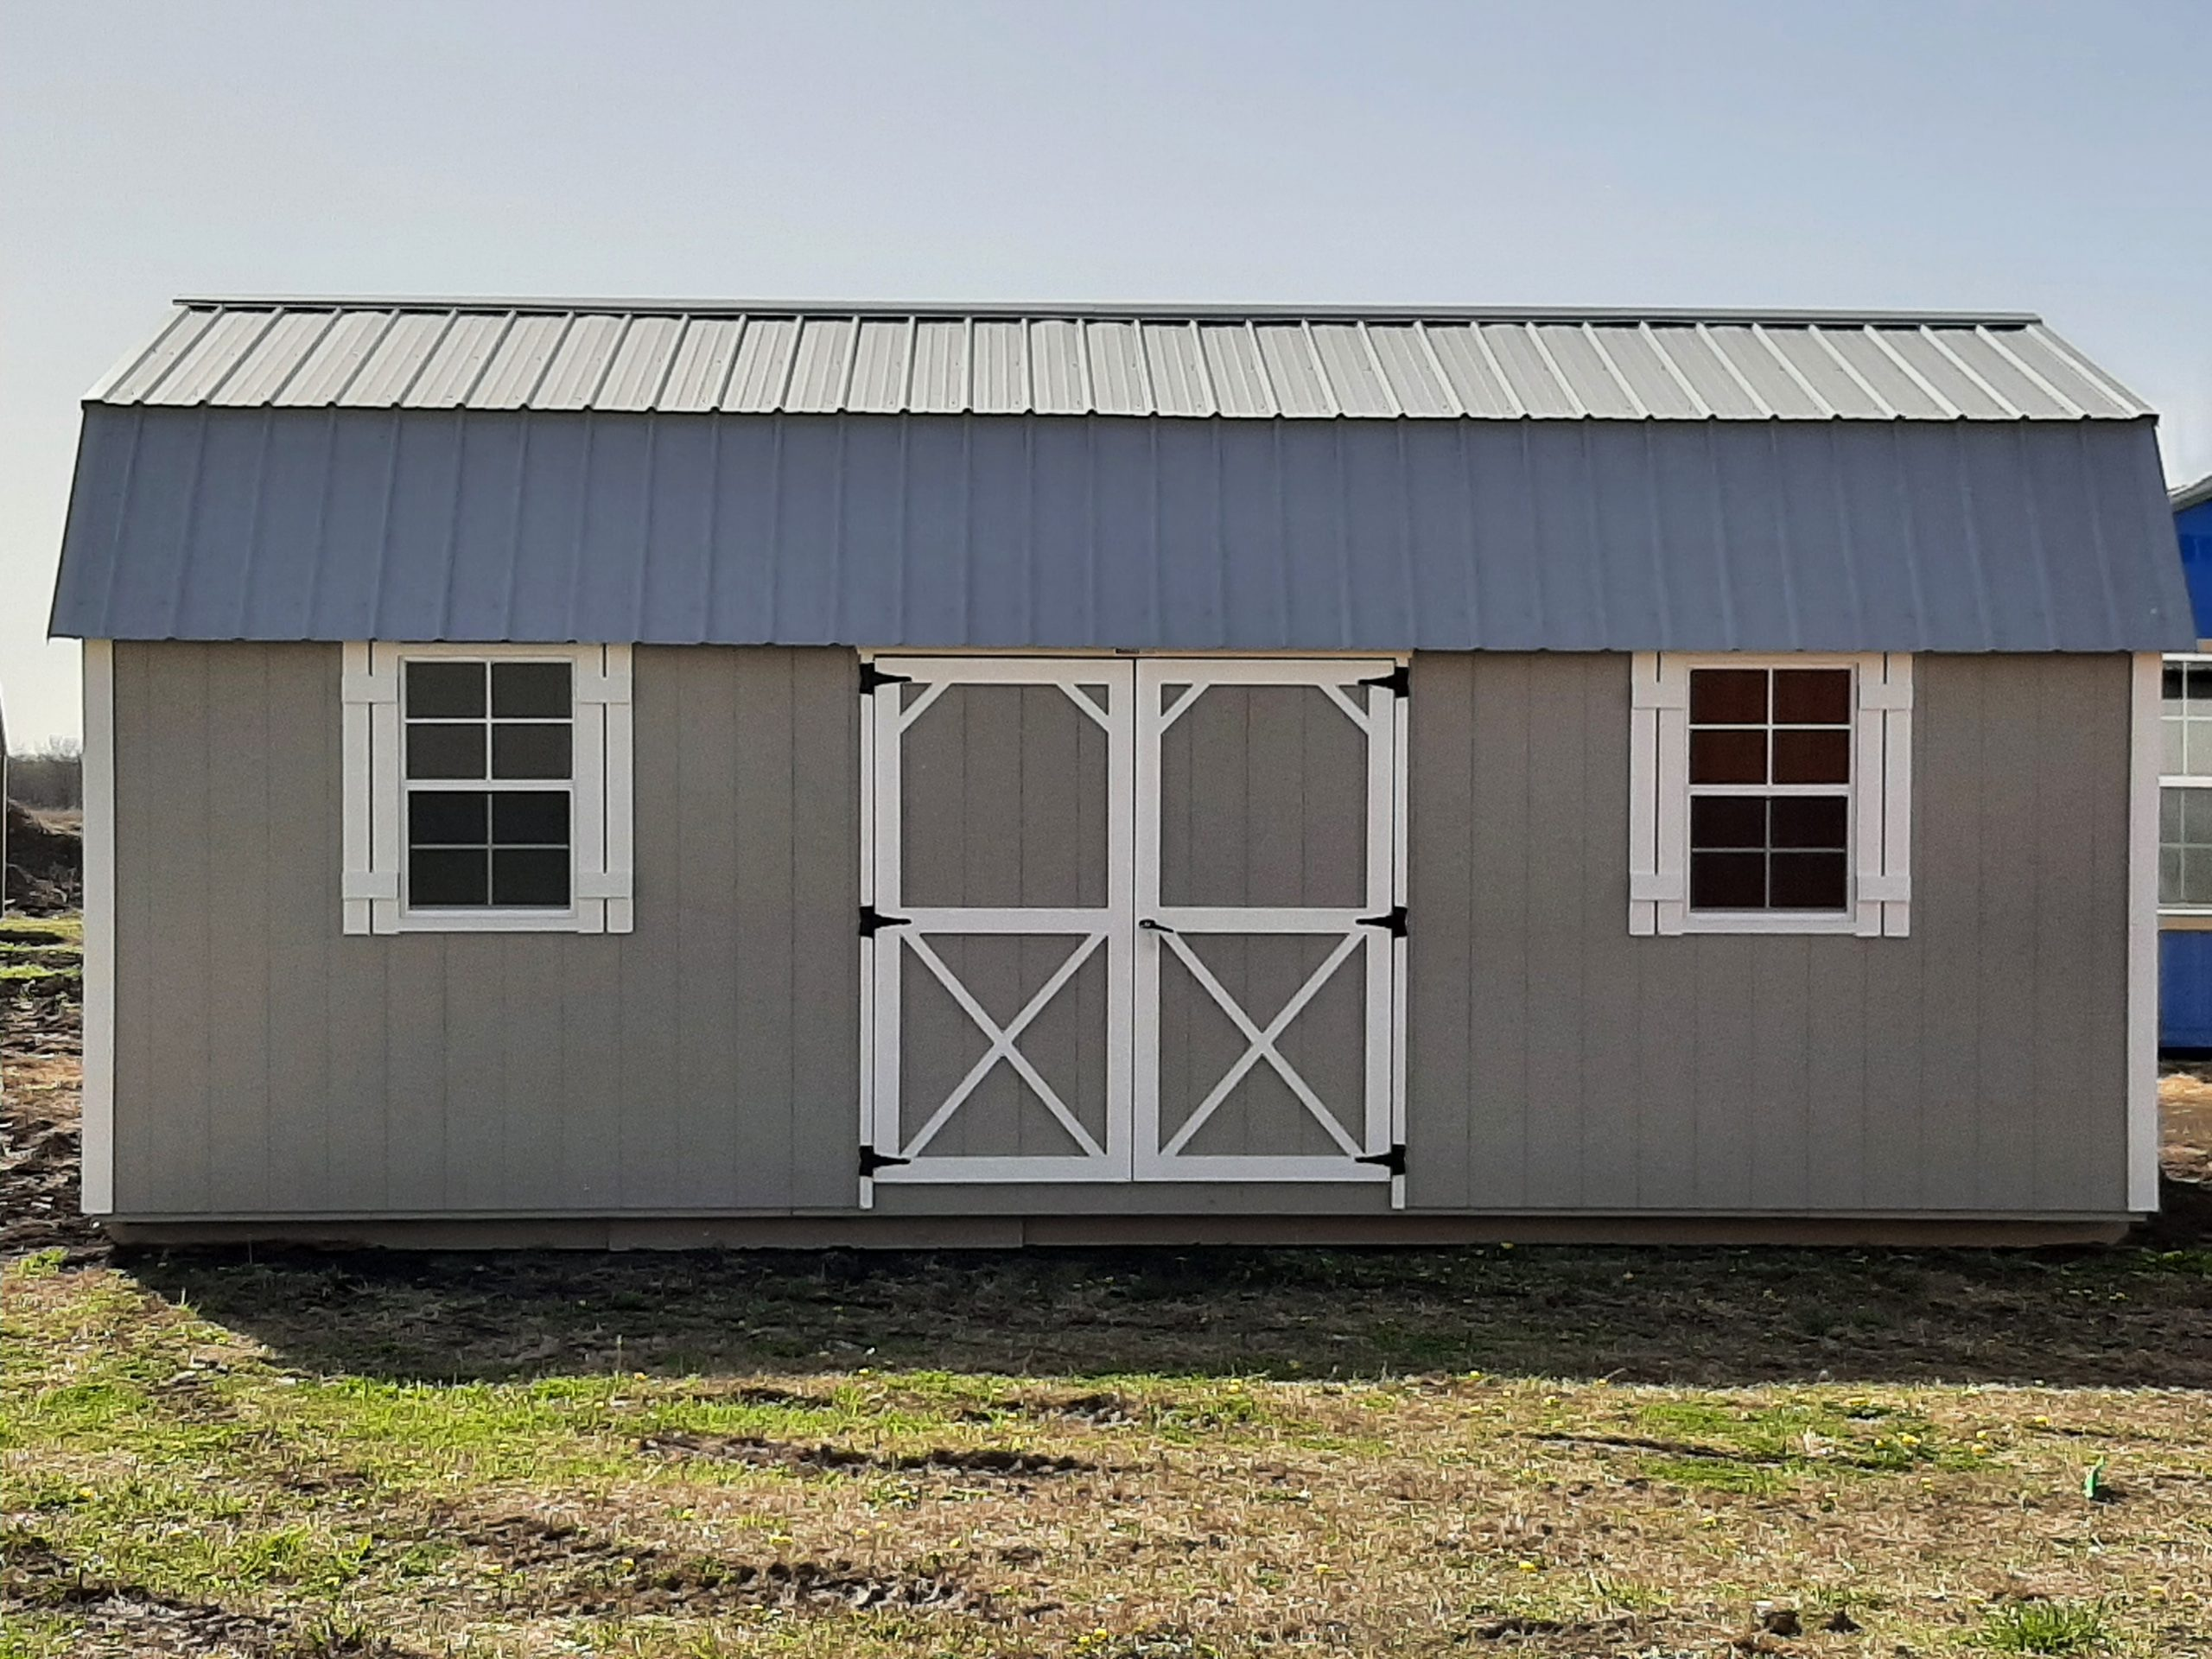 12x24 Elite Lofted Barn #1896 Image